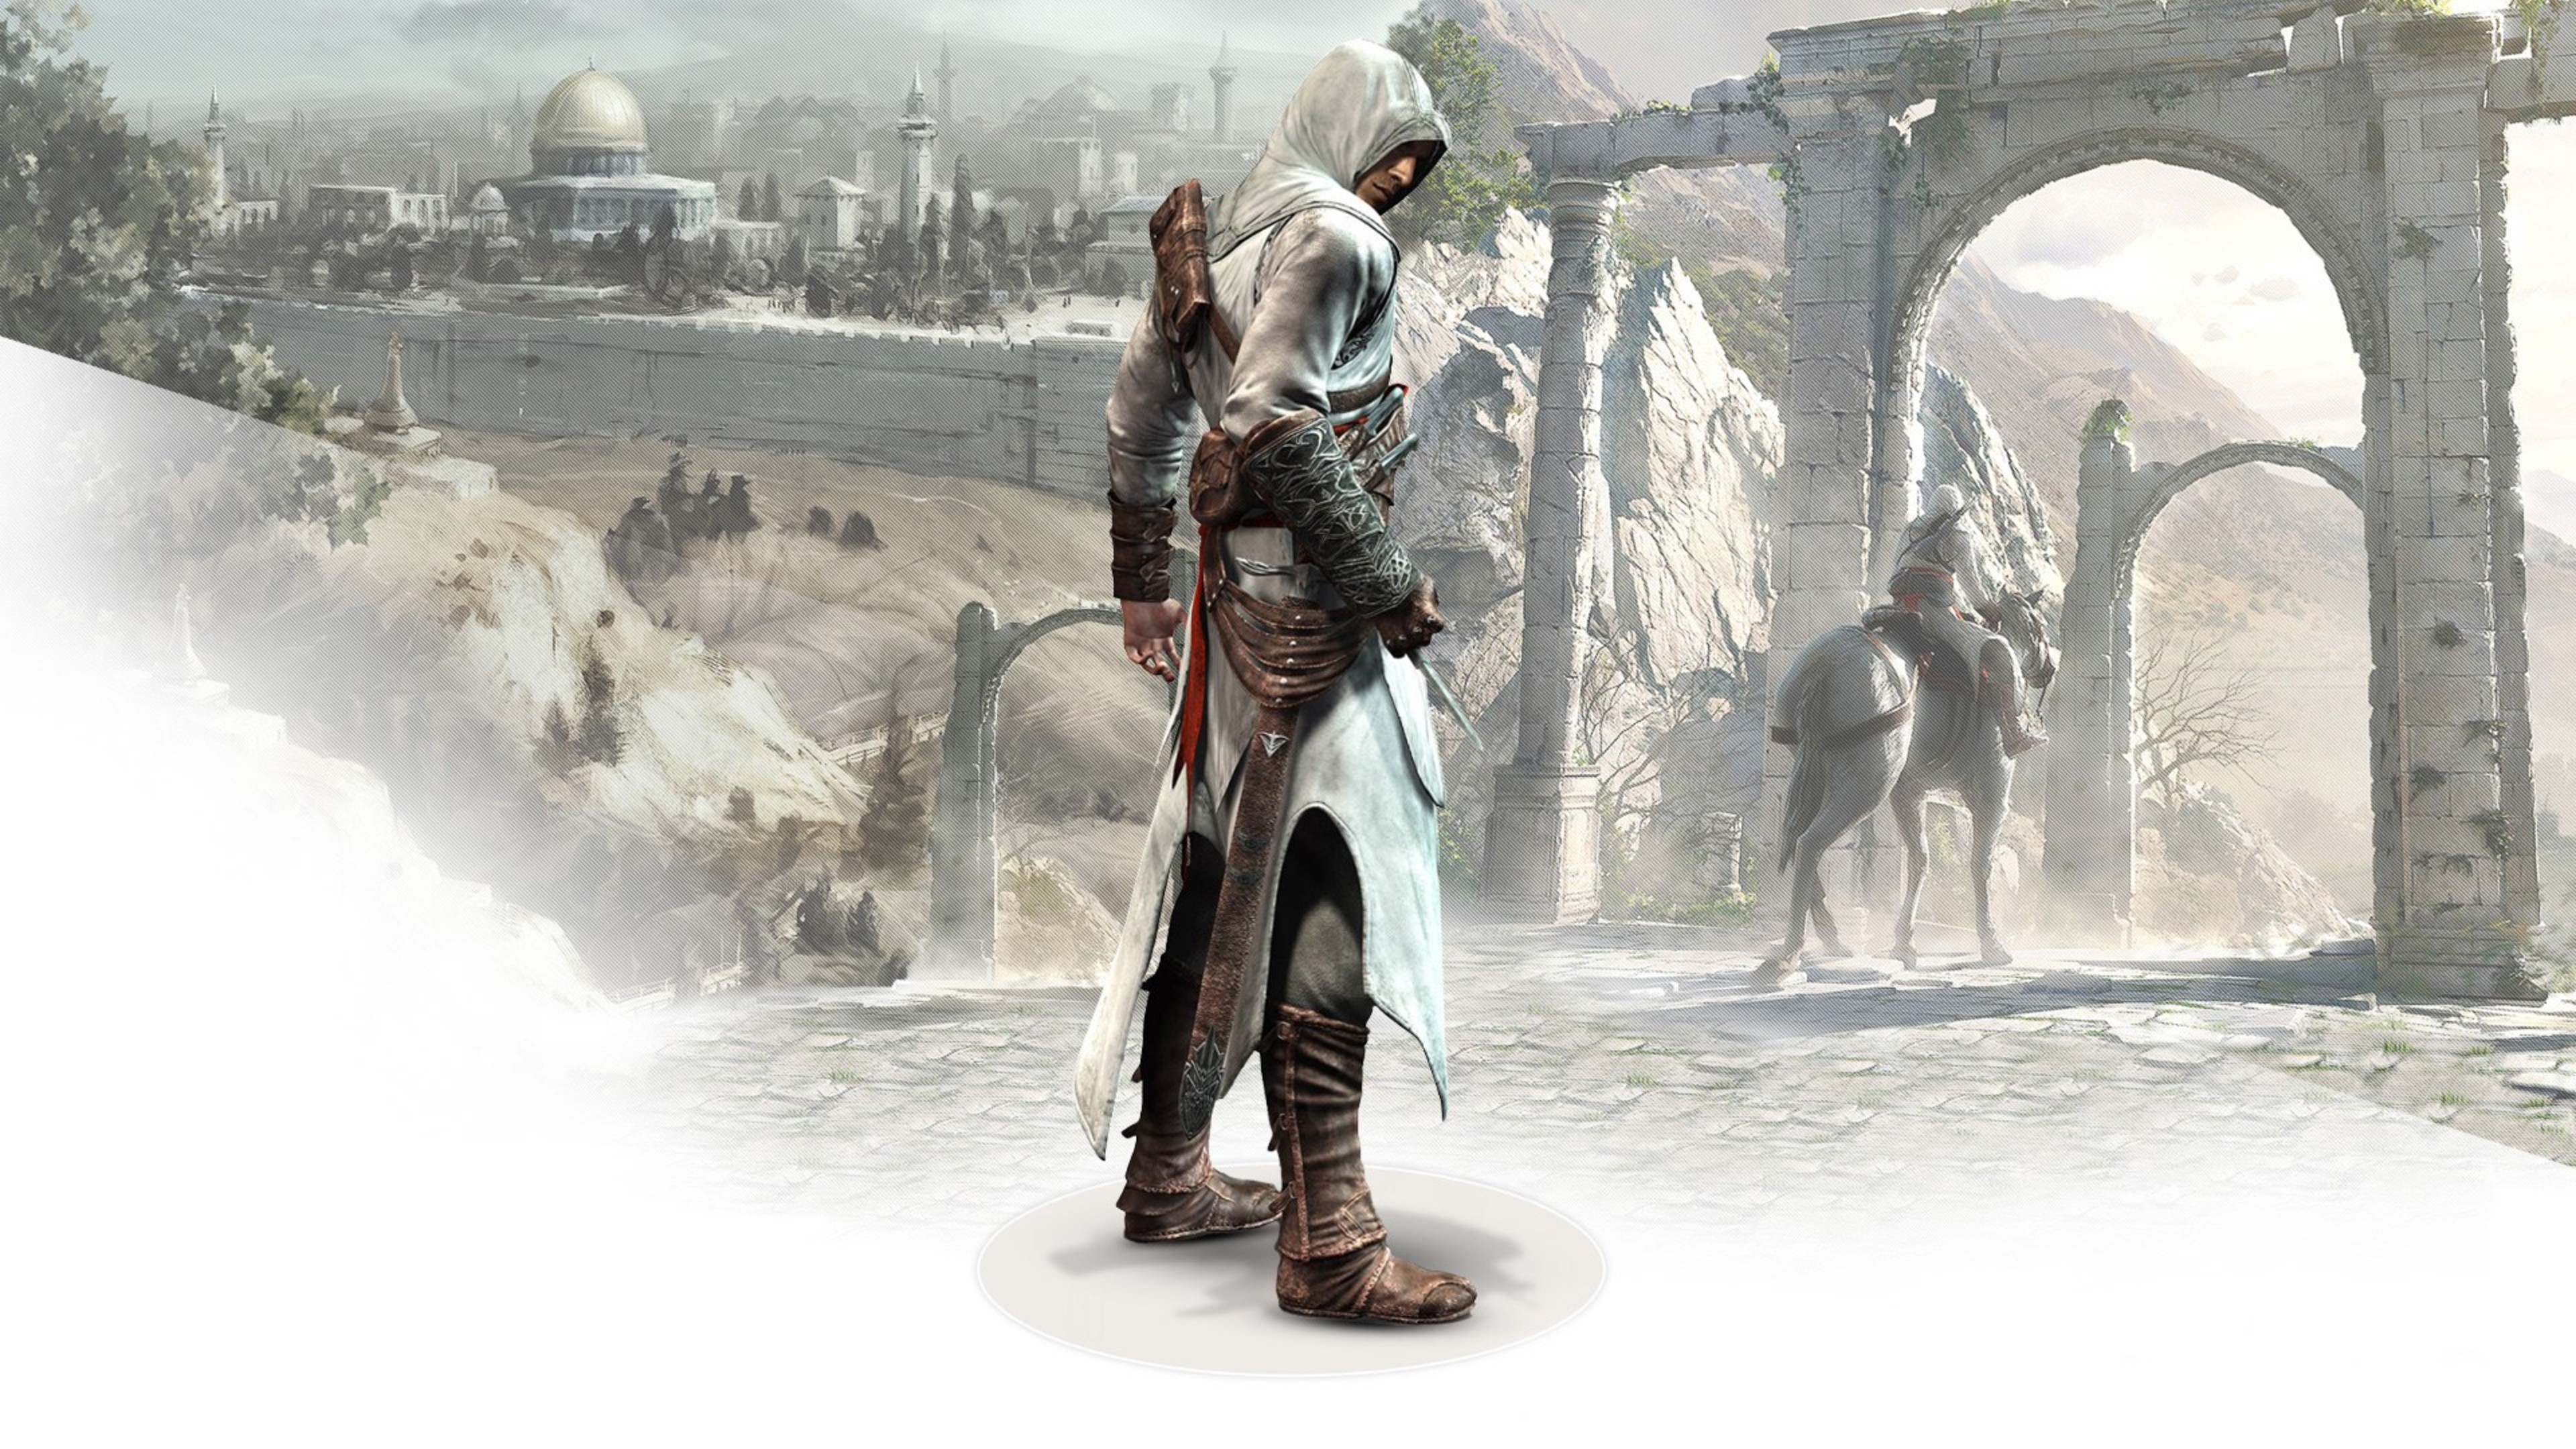 1366x768 Altair In Assassins Creed 1366x768 Resolution Hd 4k